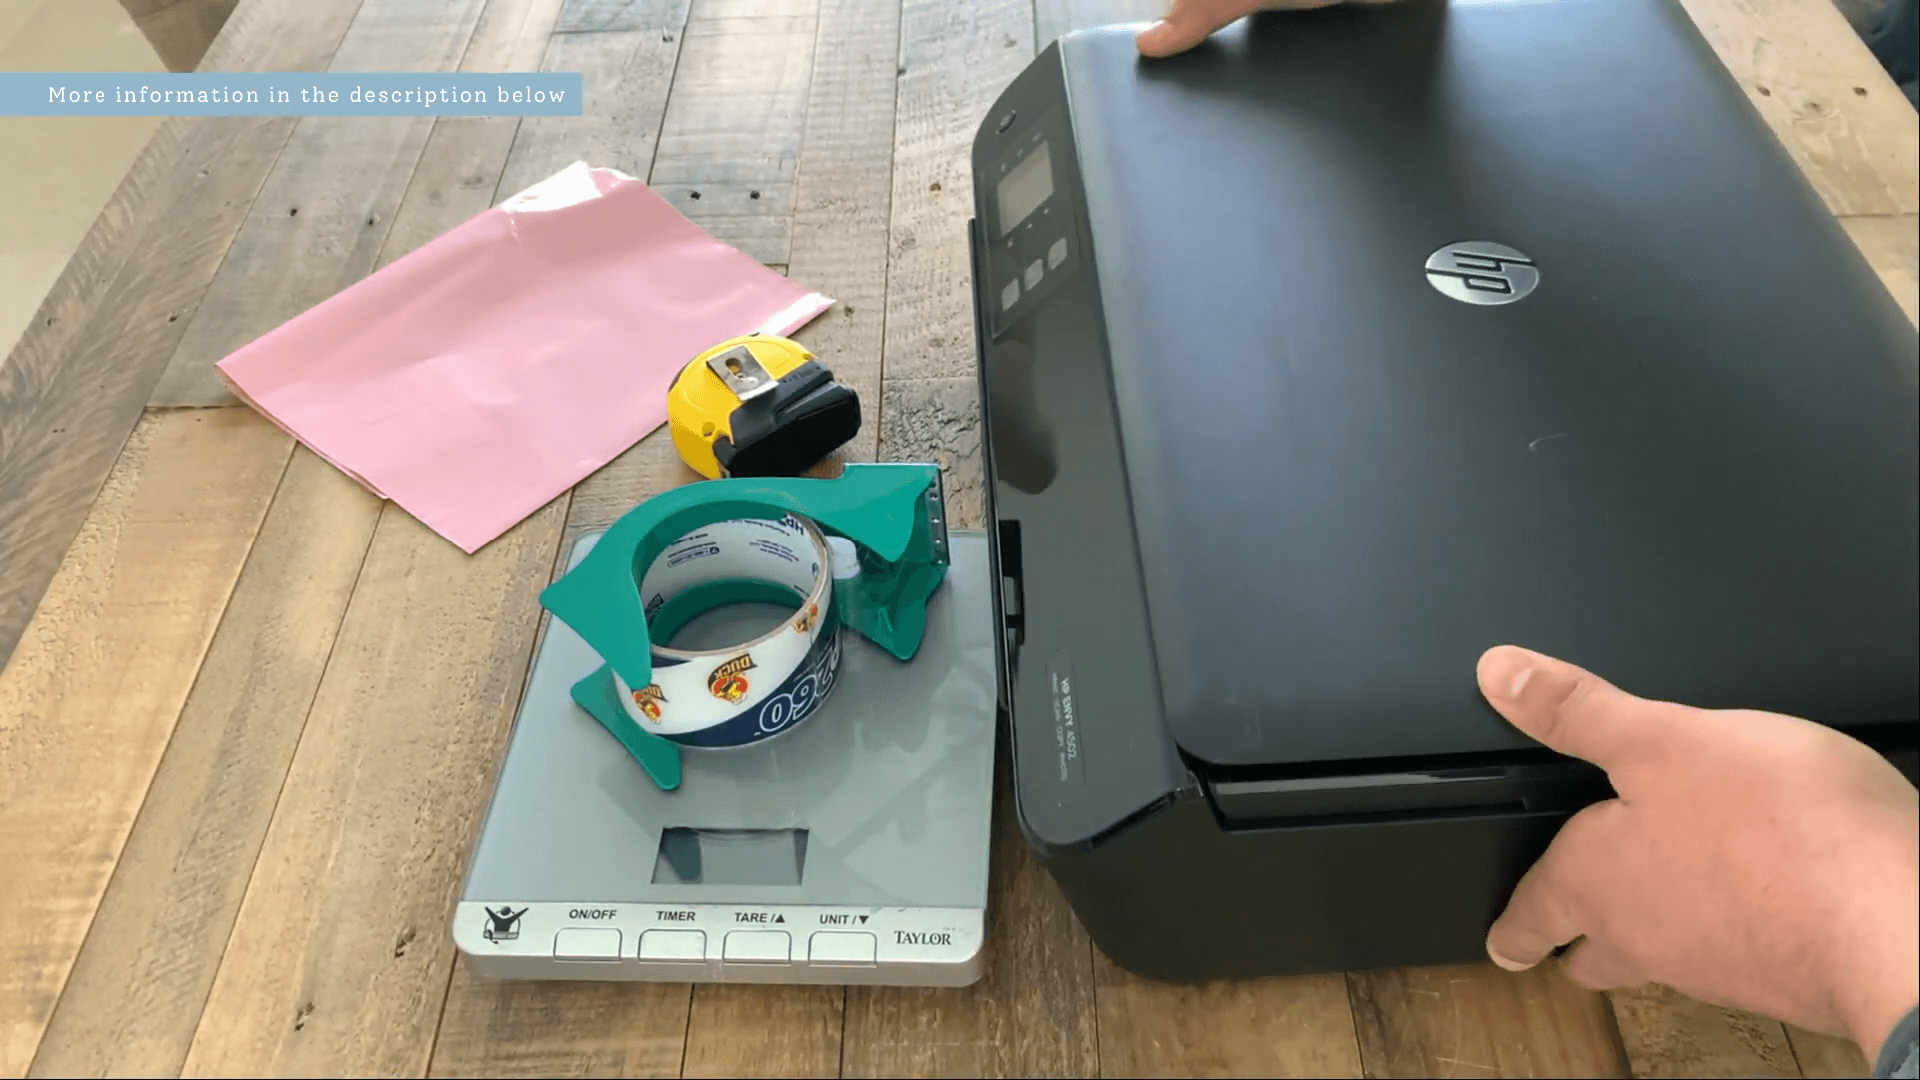 Kitchen scale, measuring tape, poly mailers, printer